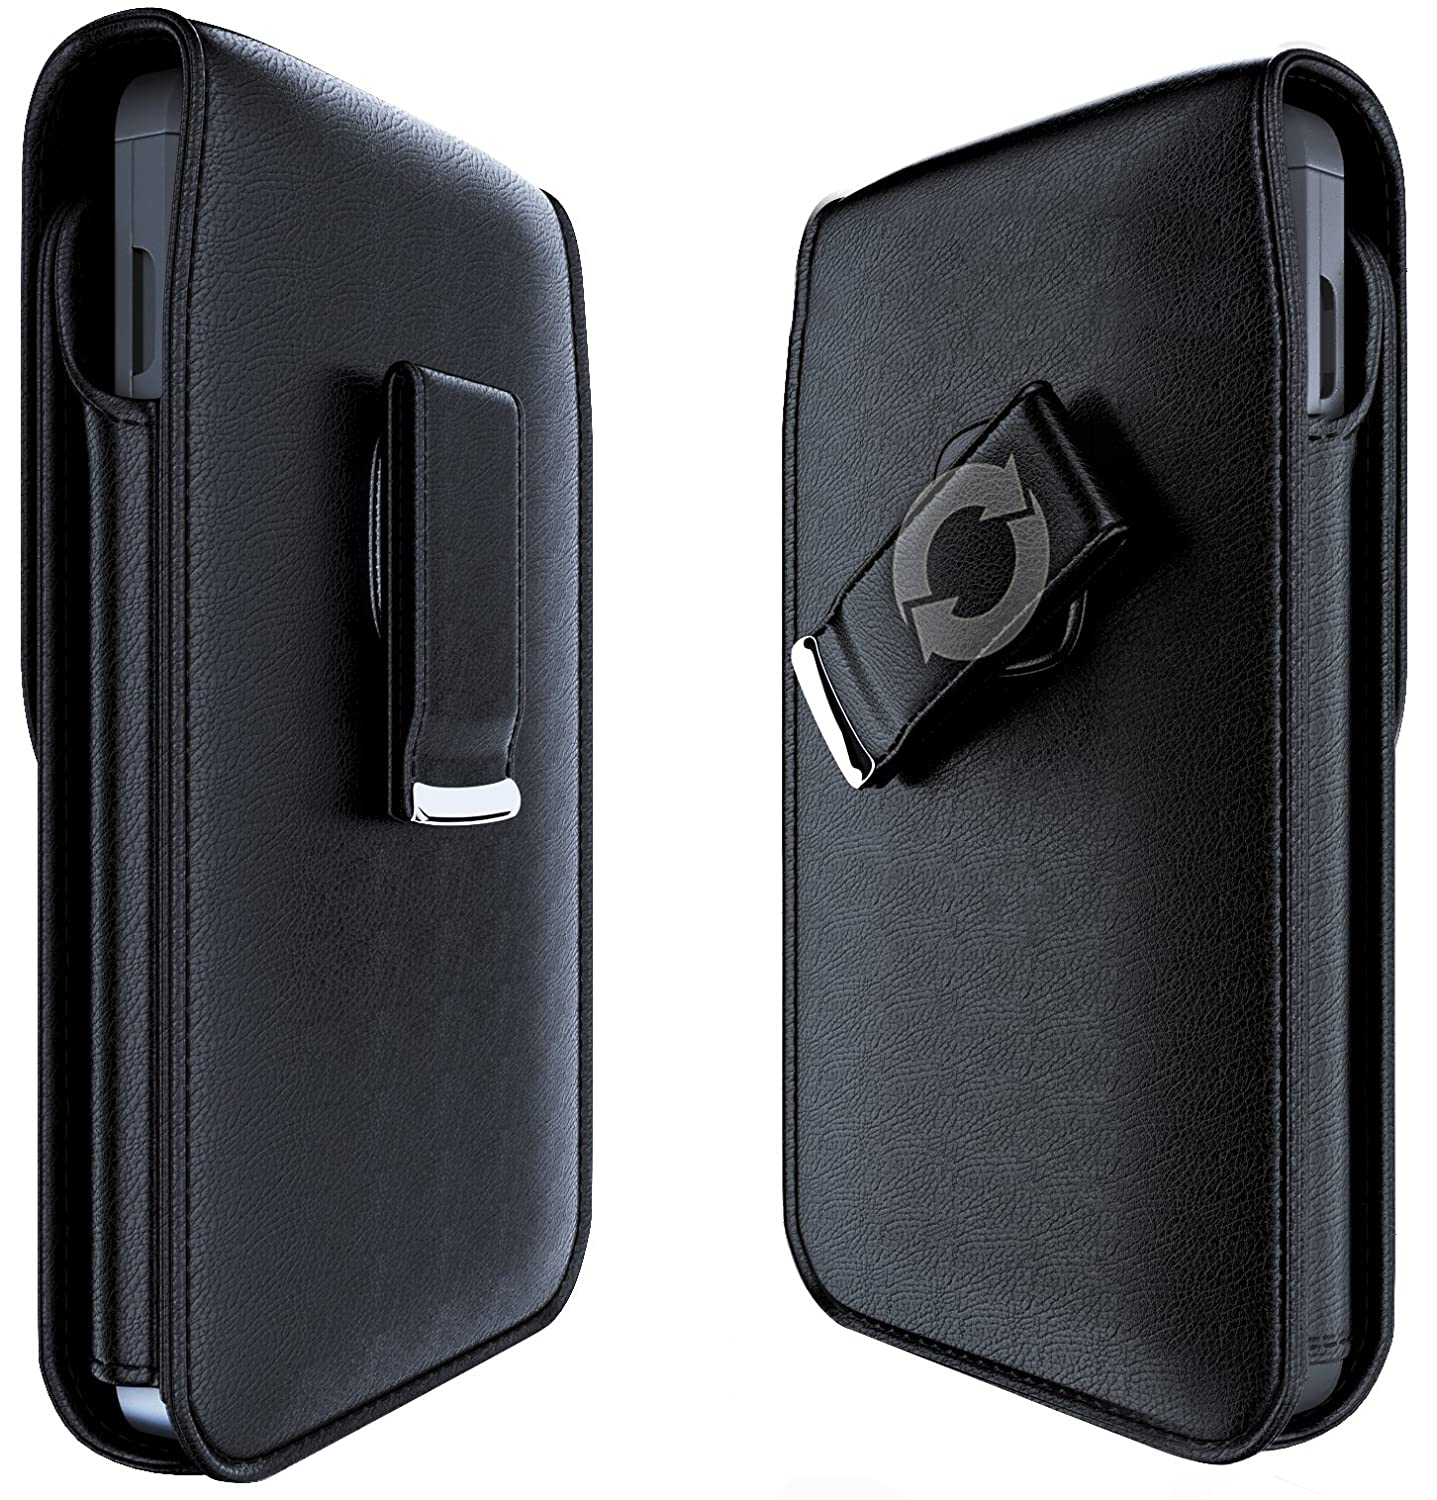 iphone xr carrying case